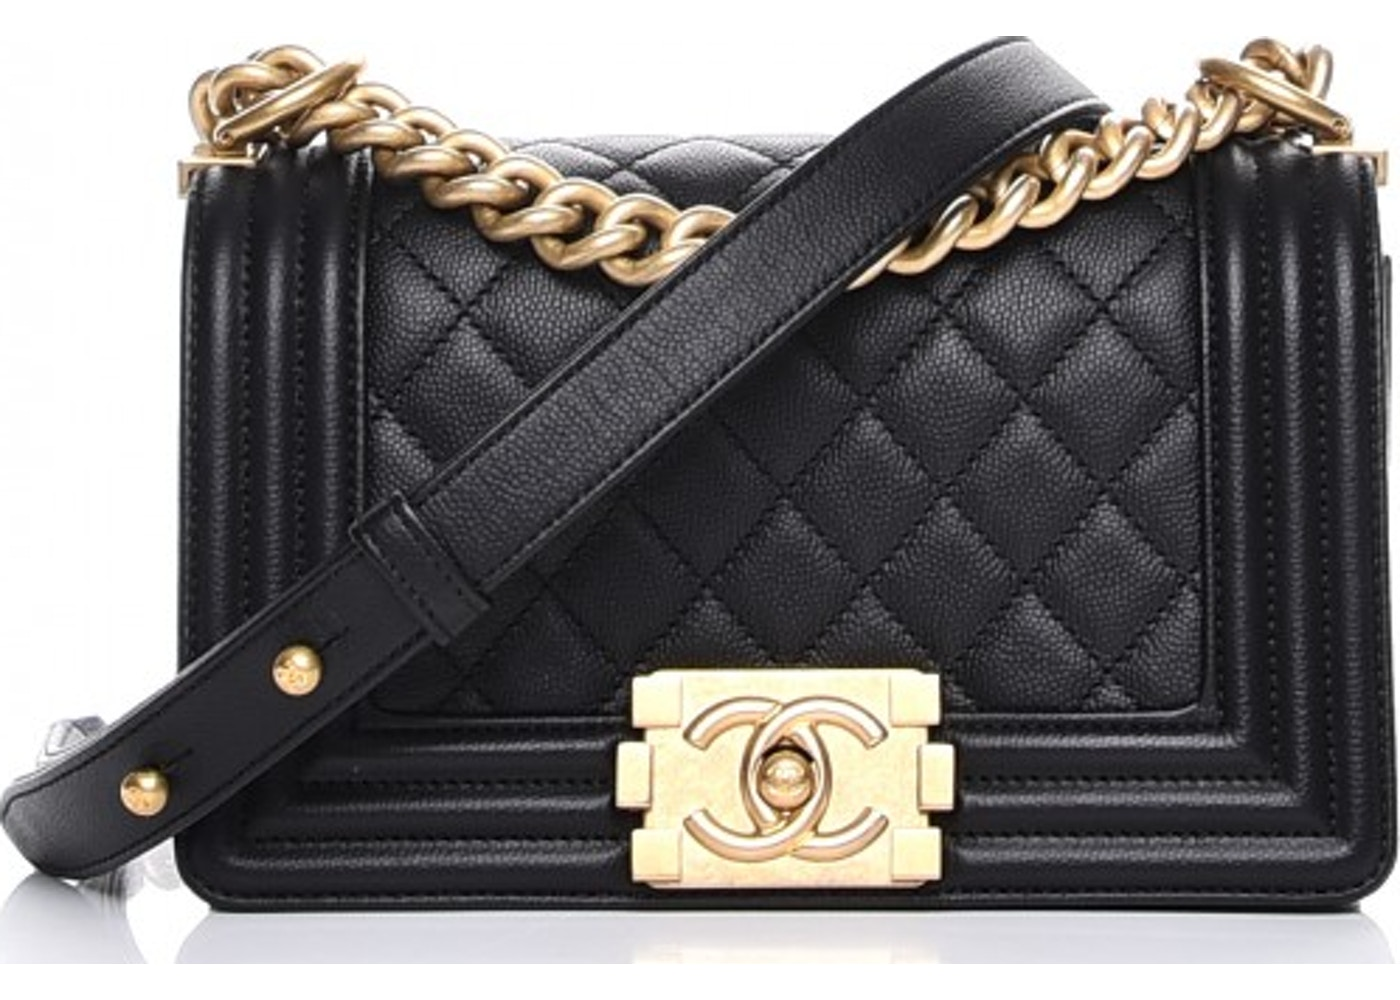 65b6bb27 Buy & Sell Chanel Handbags - Price Premium